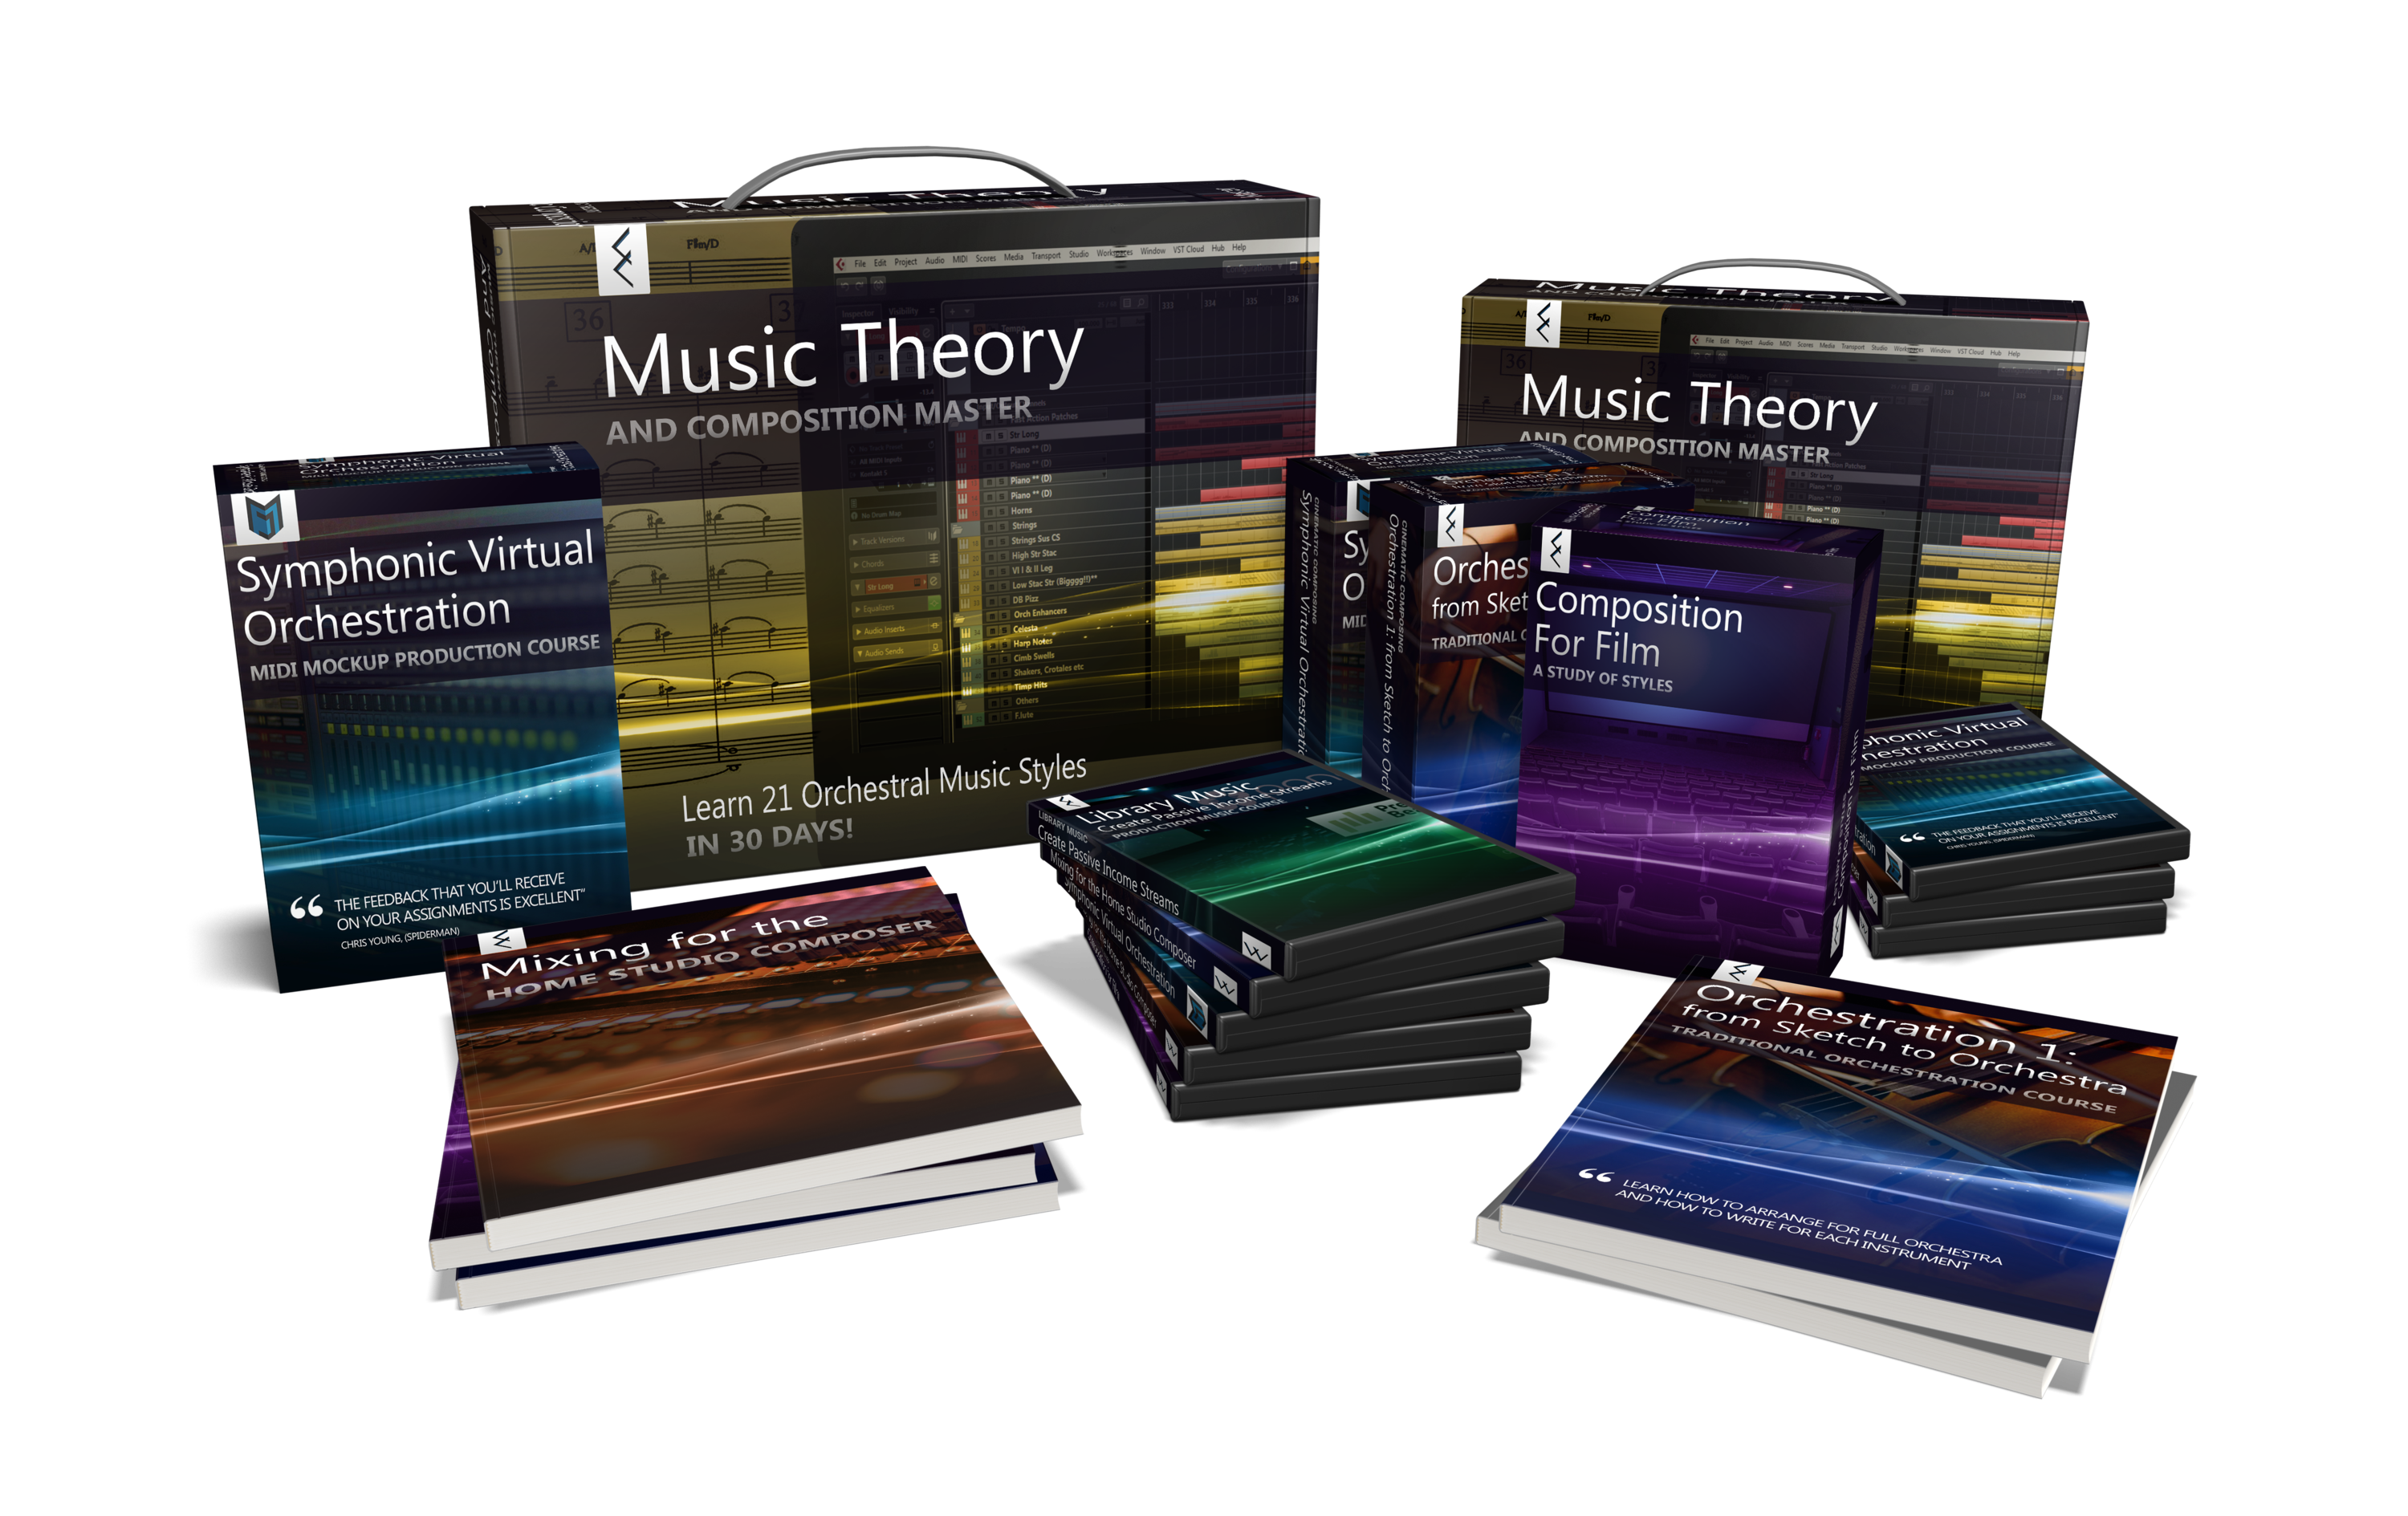 Music Theory and Composition Mastery